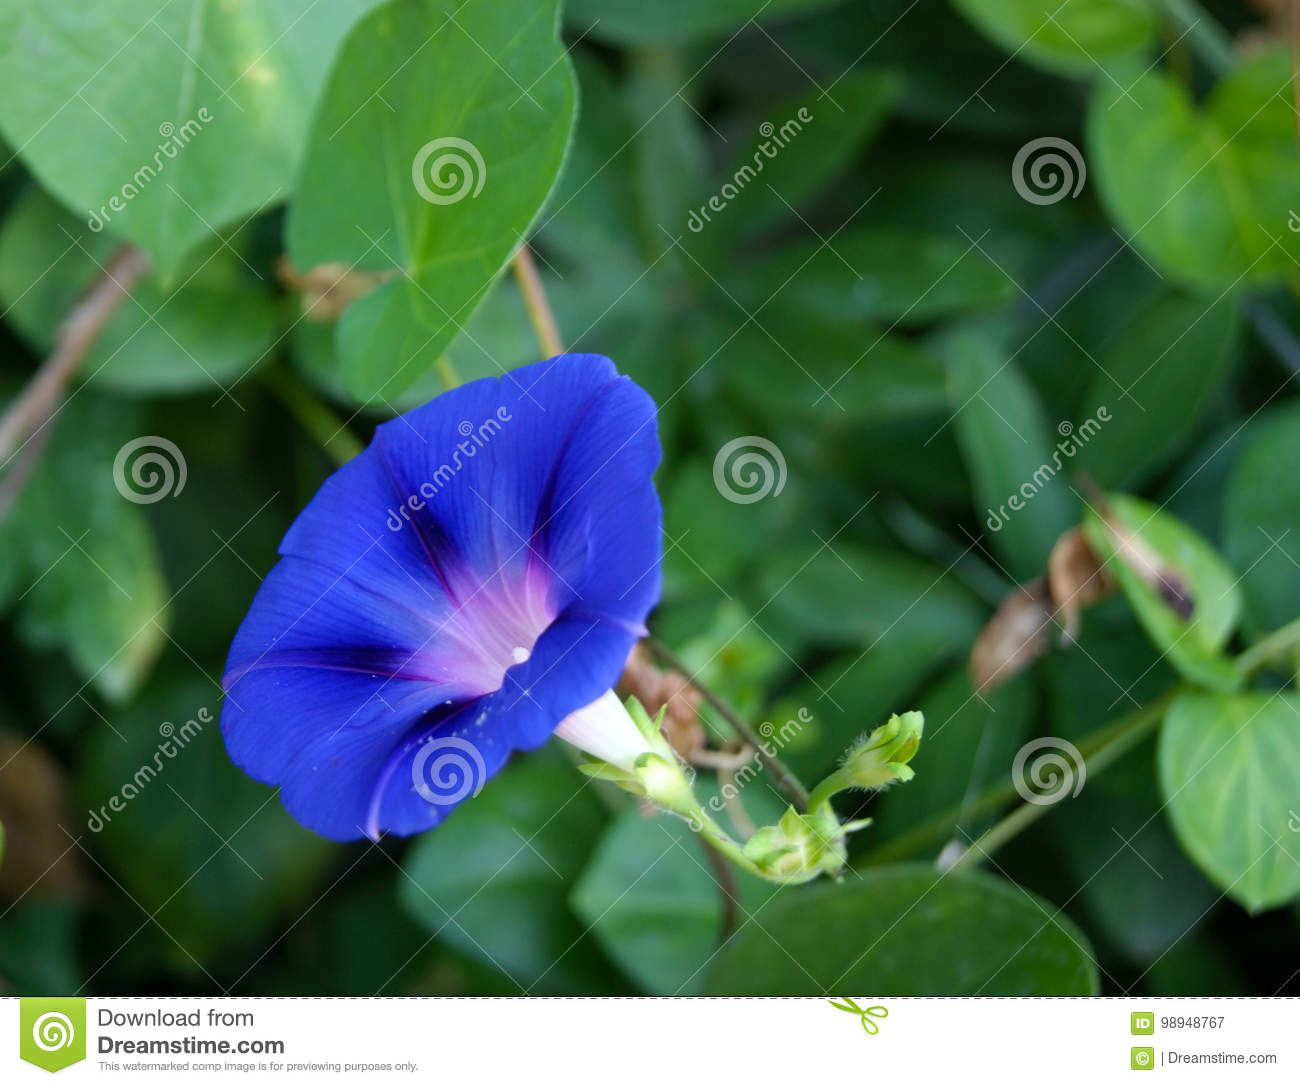 Ivy flower stock image image of indigo deep plant 98948767 blue ivy flower closeup gainst the background of dark green foliage izmirmasajfo